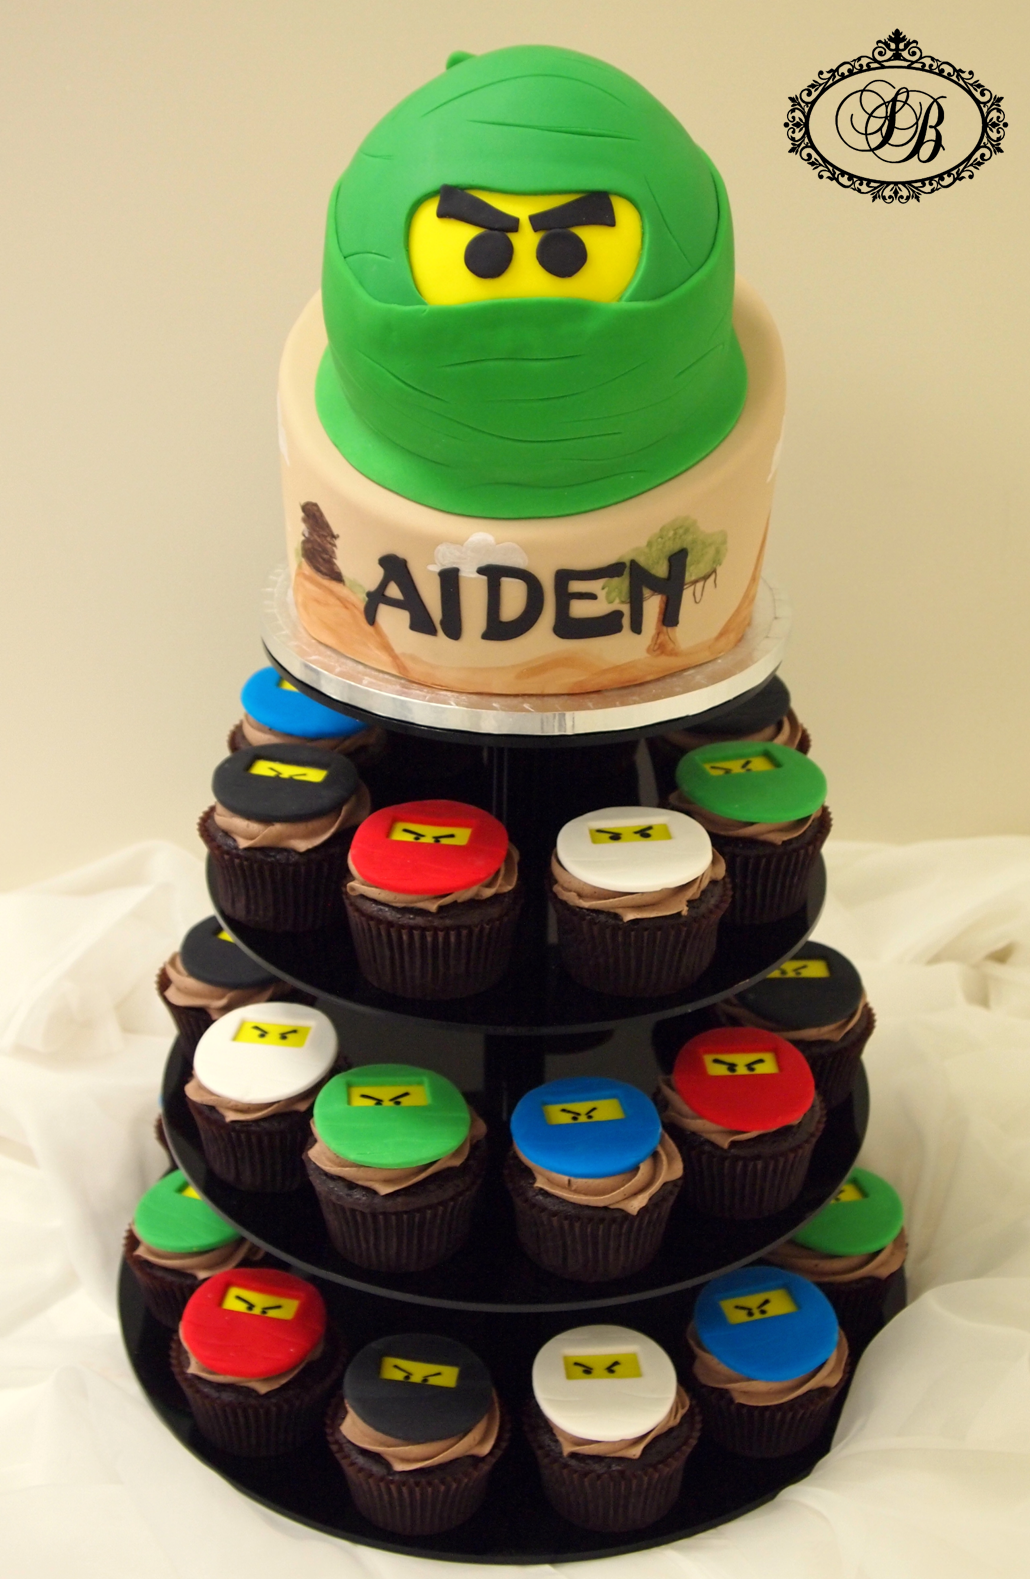 Lego ninjago cake and cupcakes boys birthday  this has aiden